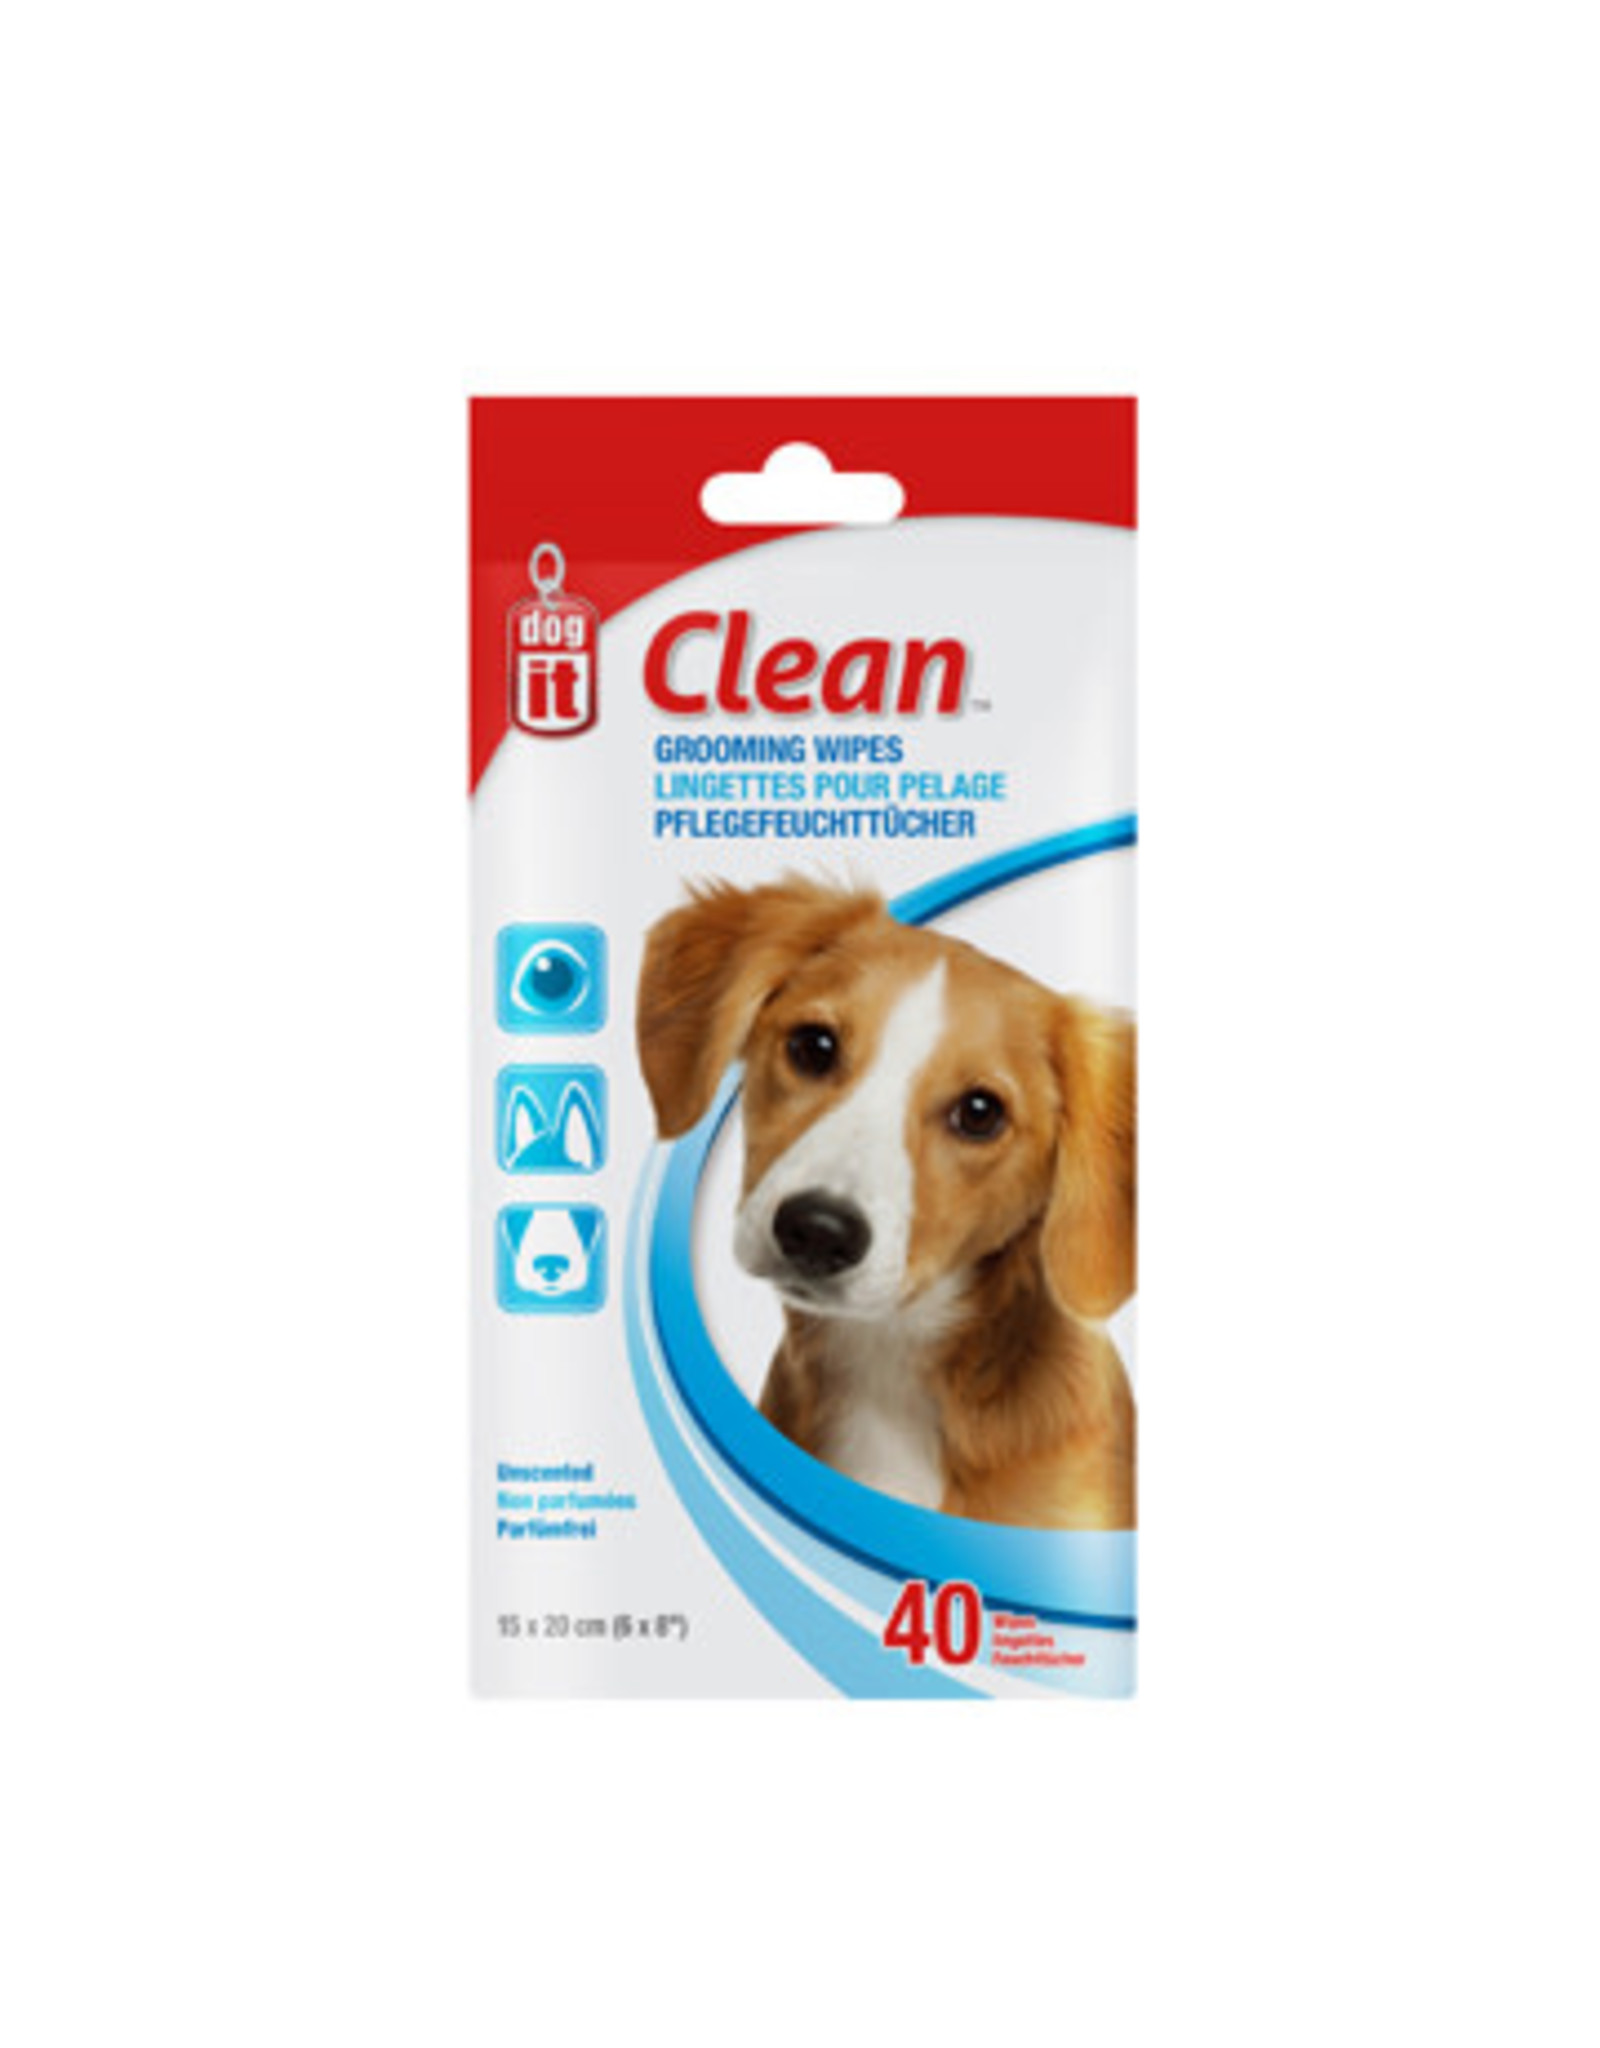 DogIt Grooming Wipes - 40 Unscented Wipes